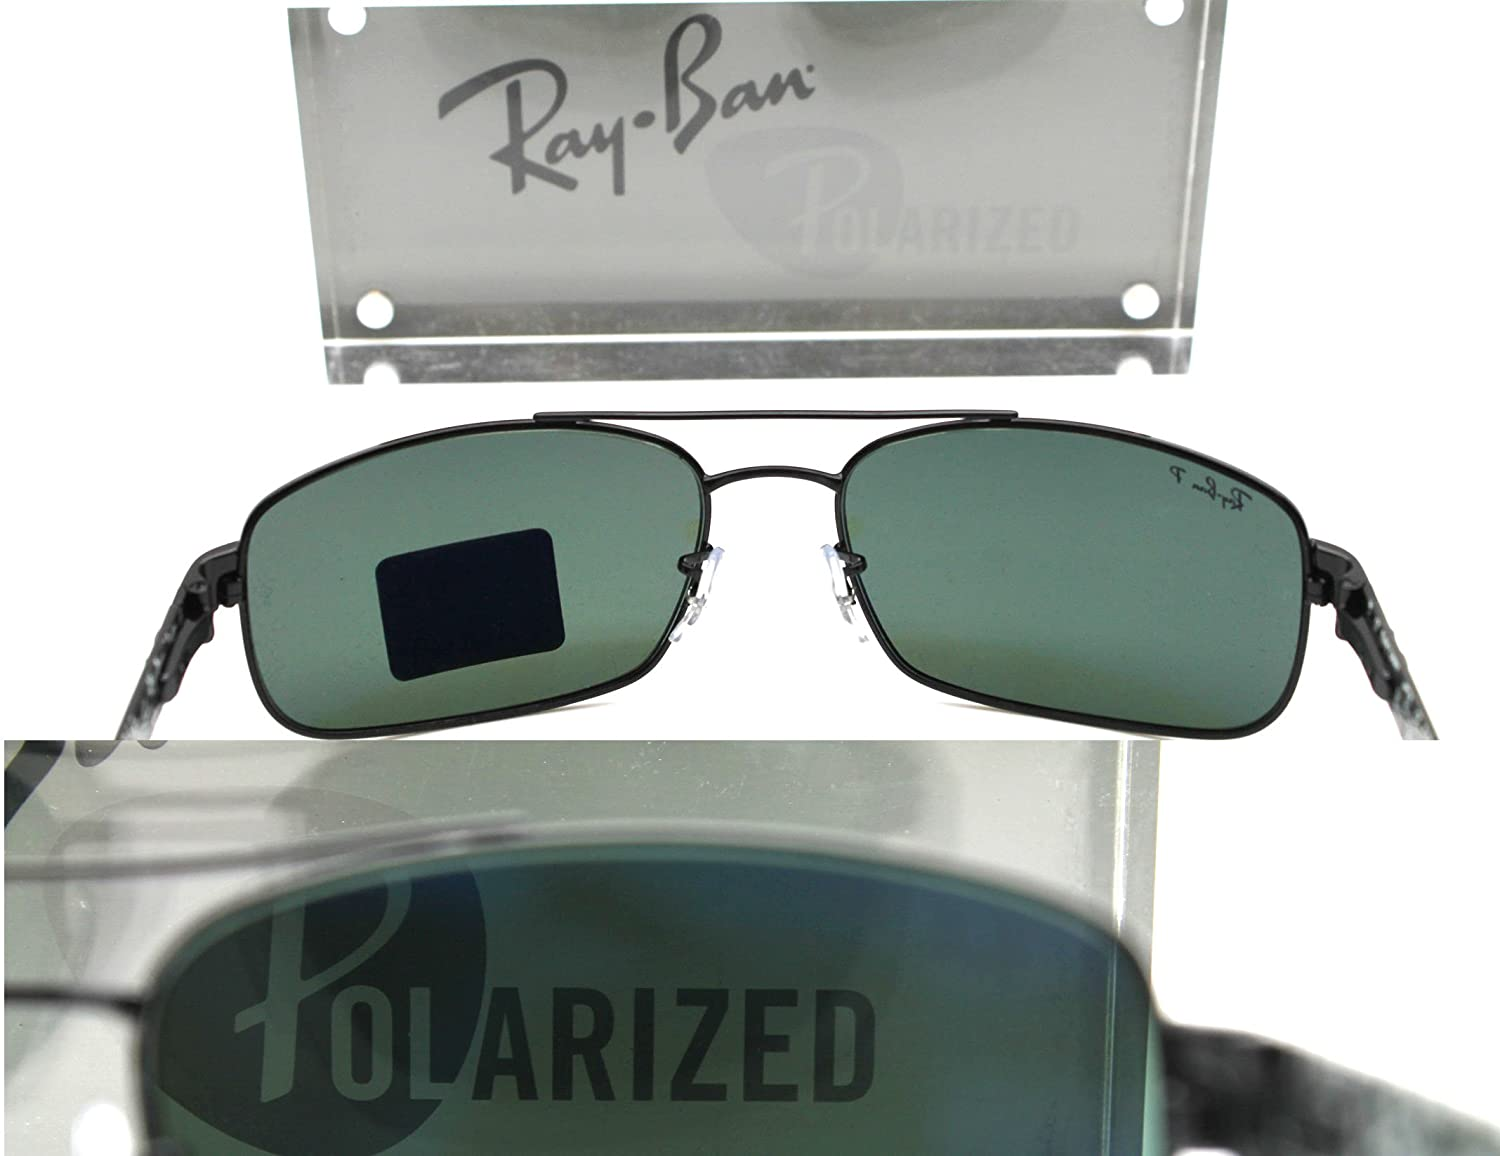 Amazon.com: Ray-ban Sunglasses RB 8316 002/N5 62mm Black Carbon Fibre Crystal Green Polarized: Shoes